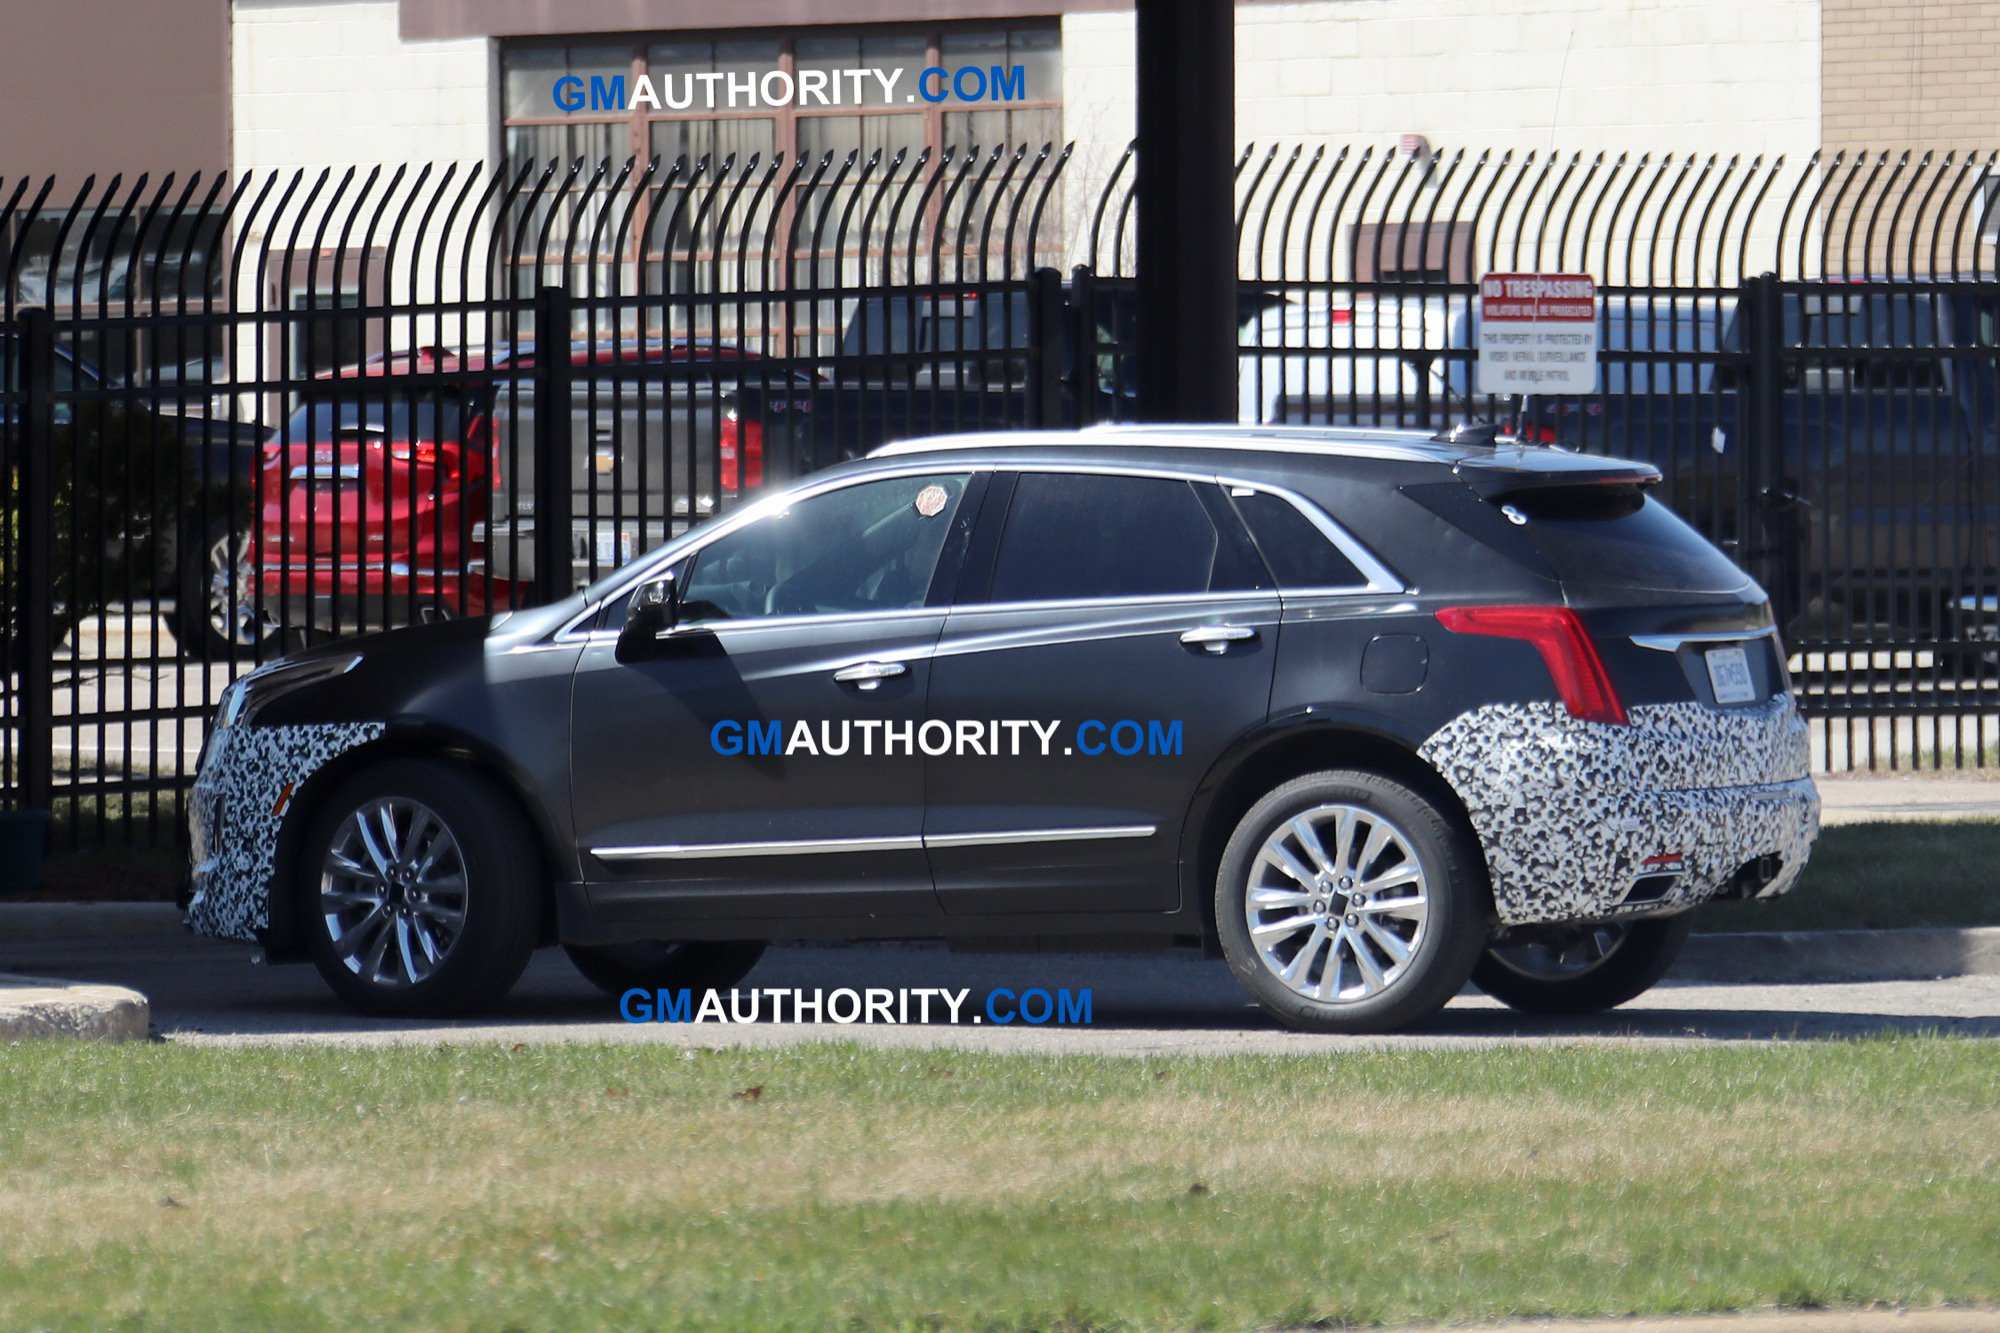 57 Great 2020 Spy Shots Cadillac Xt5 Images by 2020 Spy Shots Cadillac Xt5